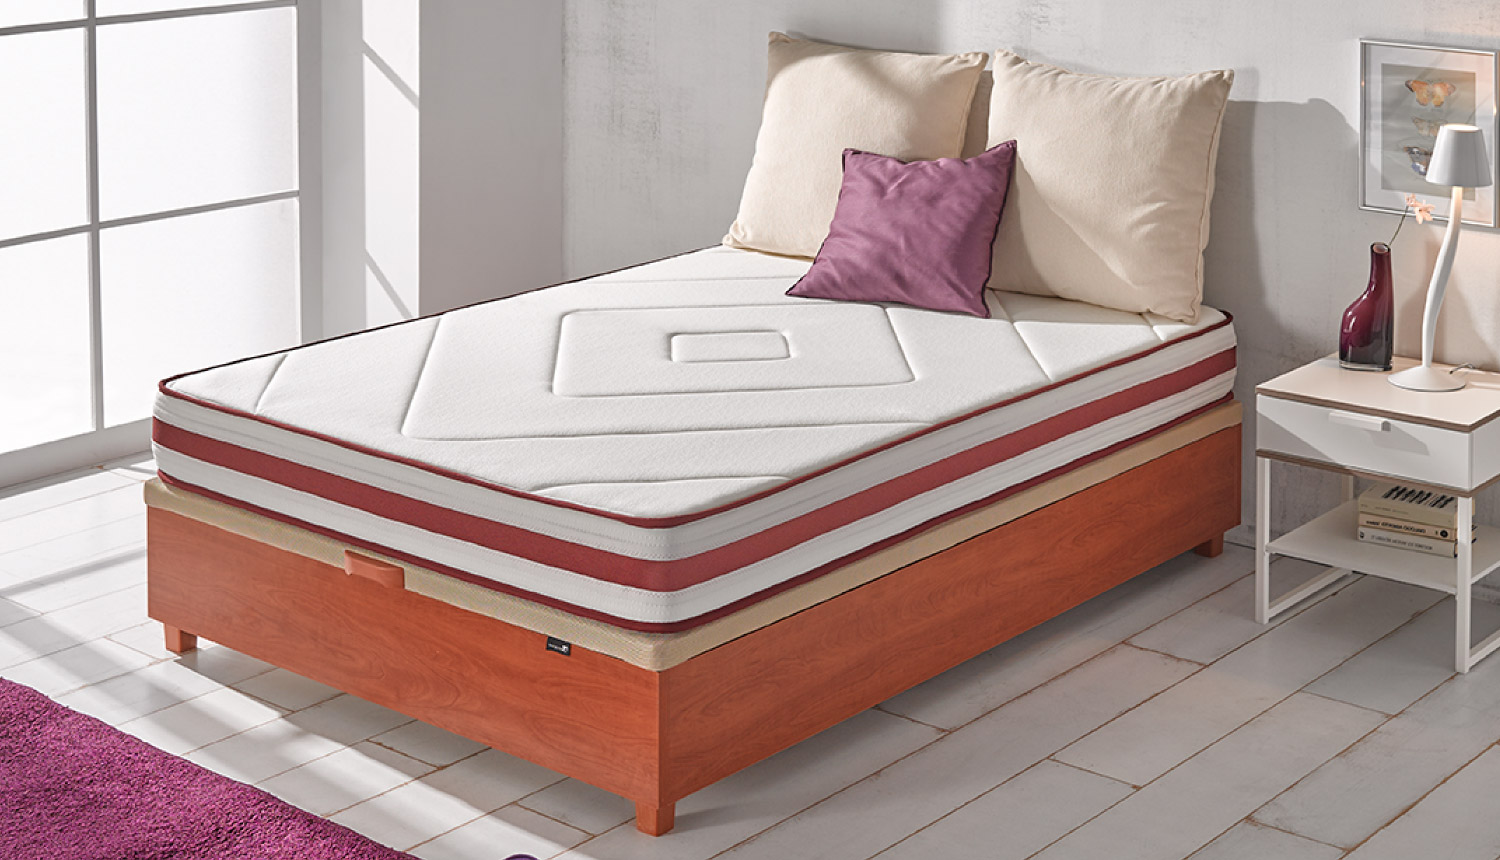 Cama con canape abatible simple canape abatible cheap for Canape abatible